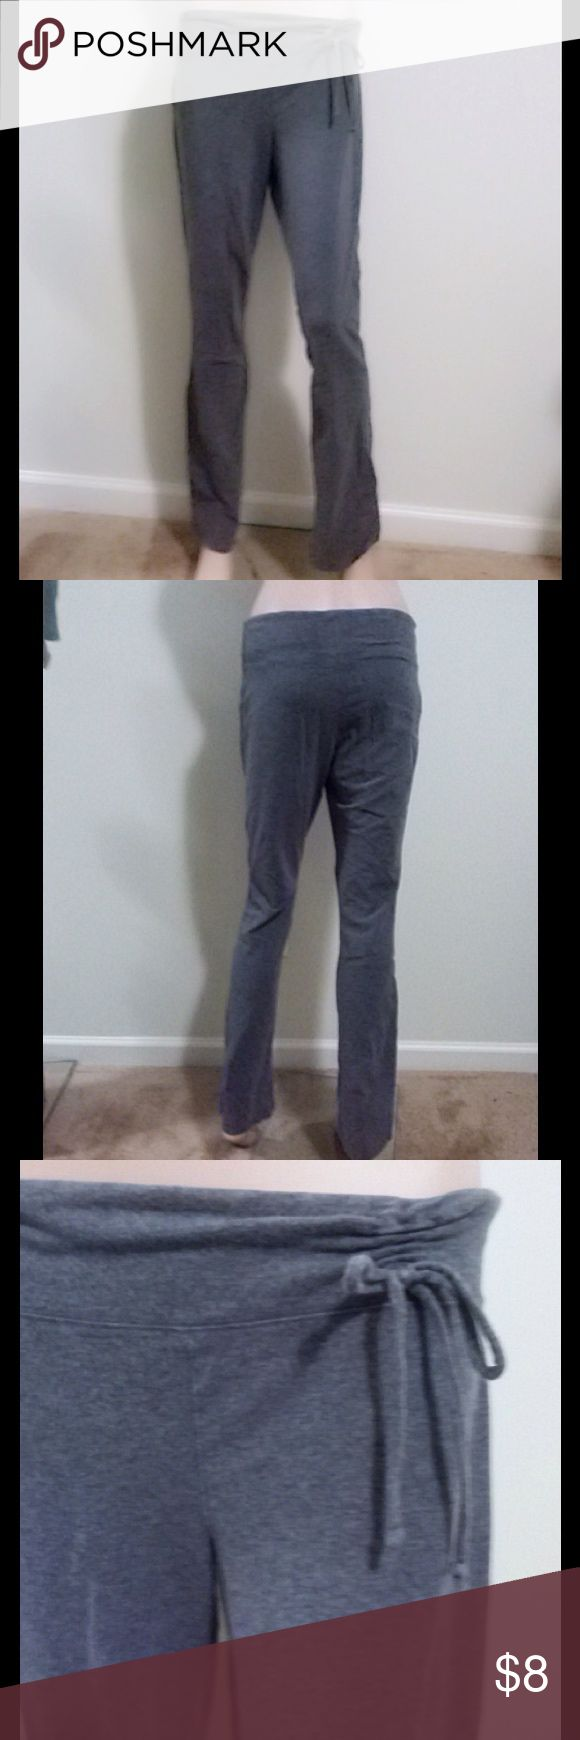 "$4 WITH BUNDLE🌺YOGA PANTS JUNIORS L $4 with bundle. Dark gray yoga pants with cute gathering and bow at side waist. Boot-cut/slight flare bottom. Soft, somewhat stretchy cotton. Size Juniors L, fits more like a Small. Light pilling. Worn a handful of times and in great shape. Maxine is 5'8"" tall. Waist 24"". Hips 34"". Mossimo Supply Co Pants Track Pants & Joggers"